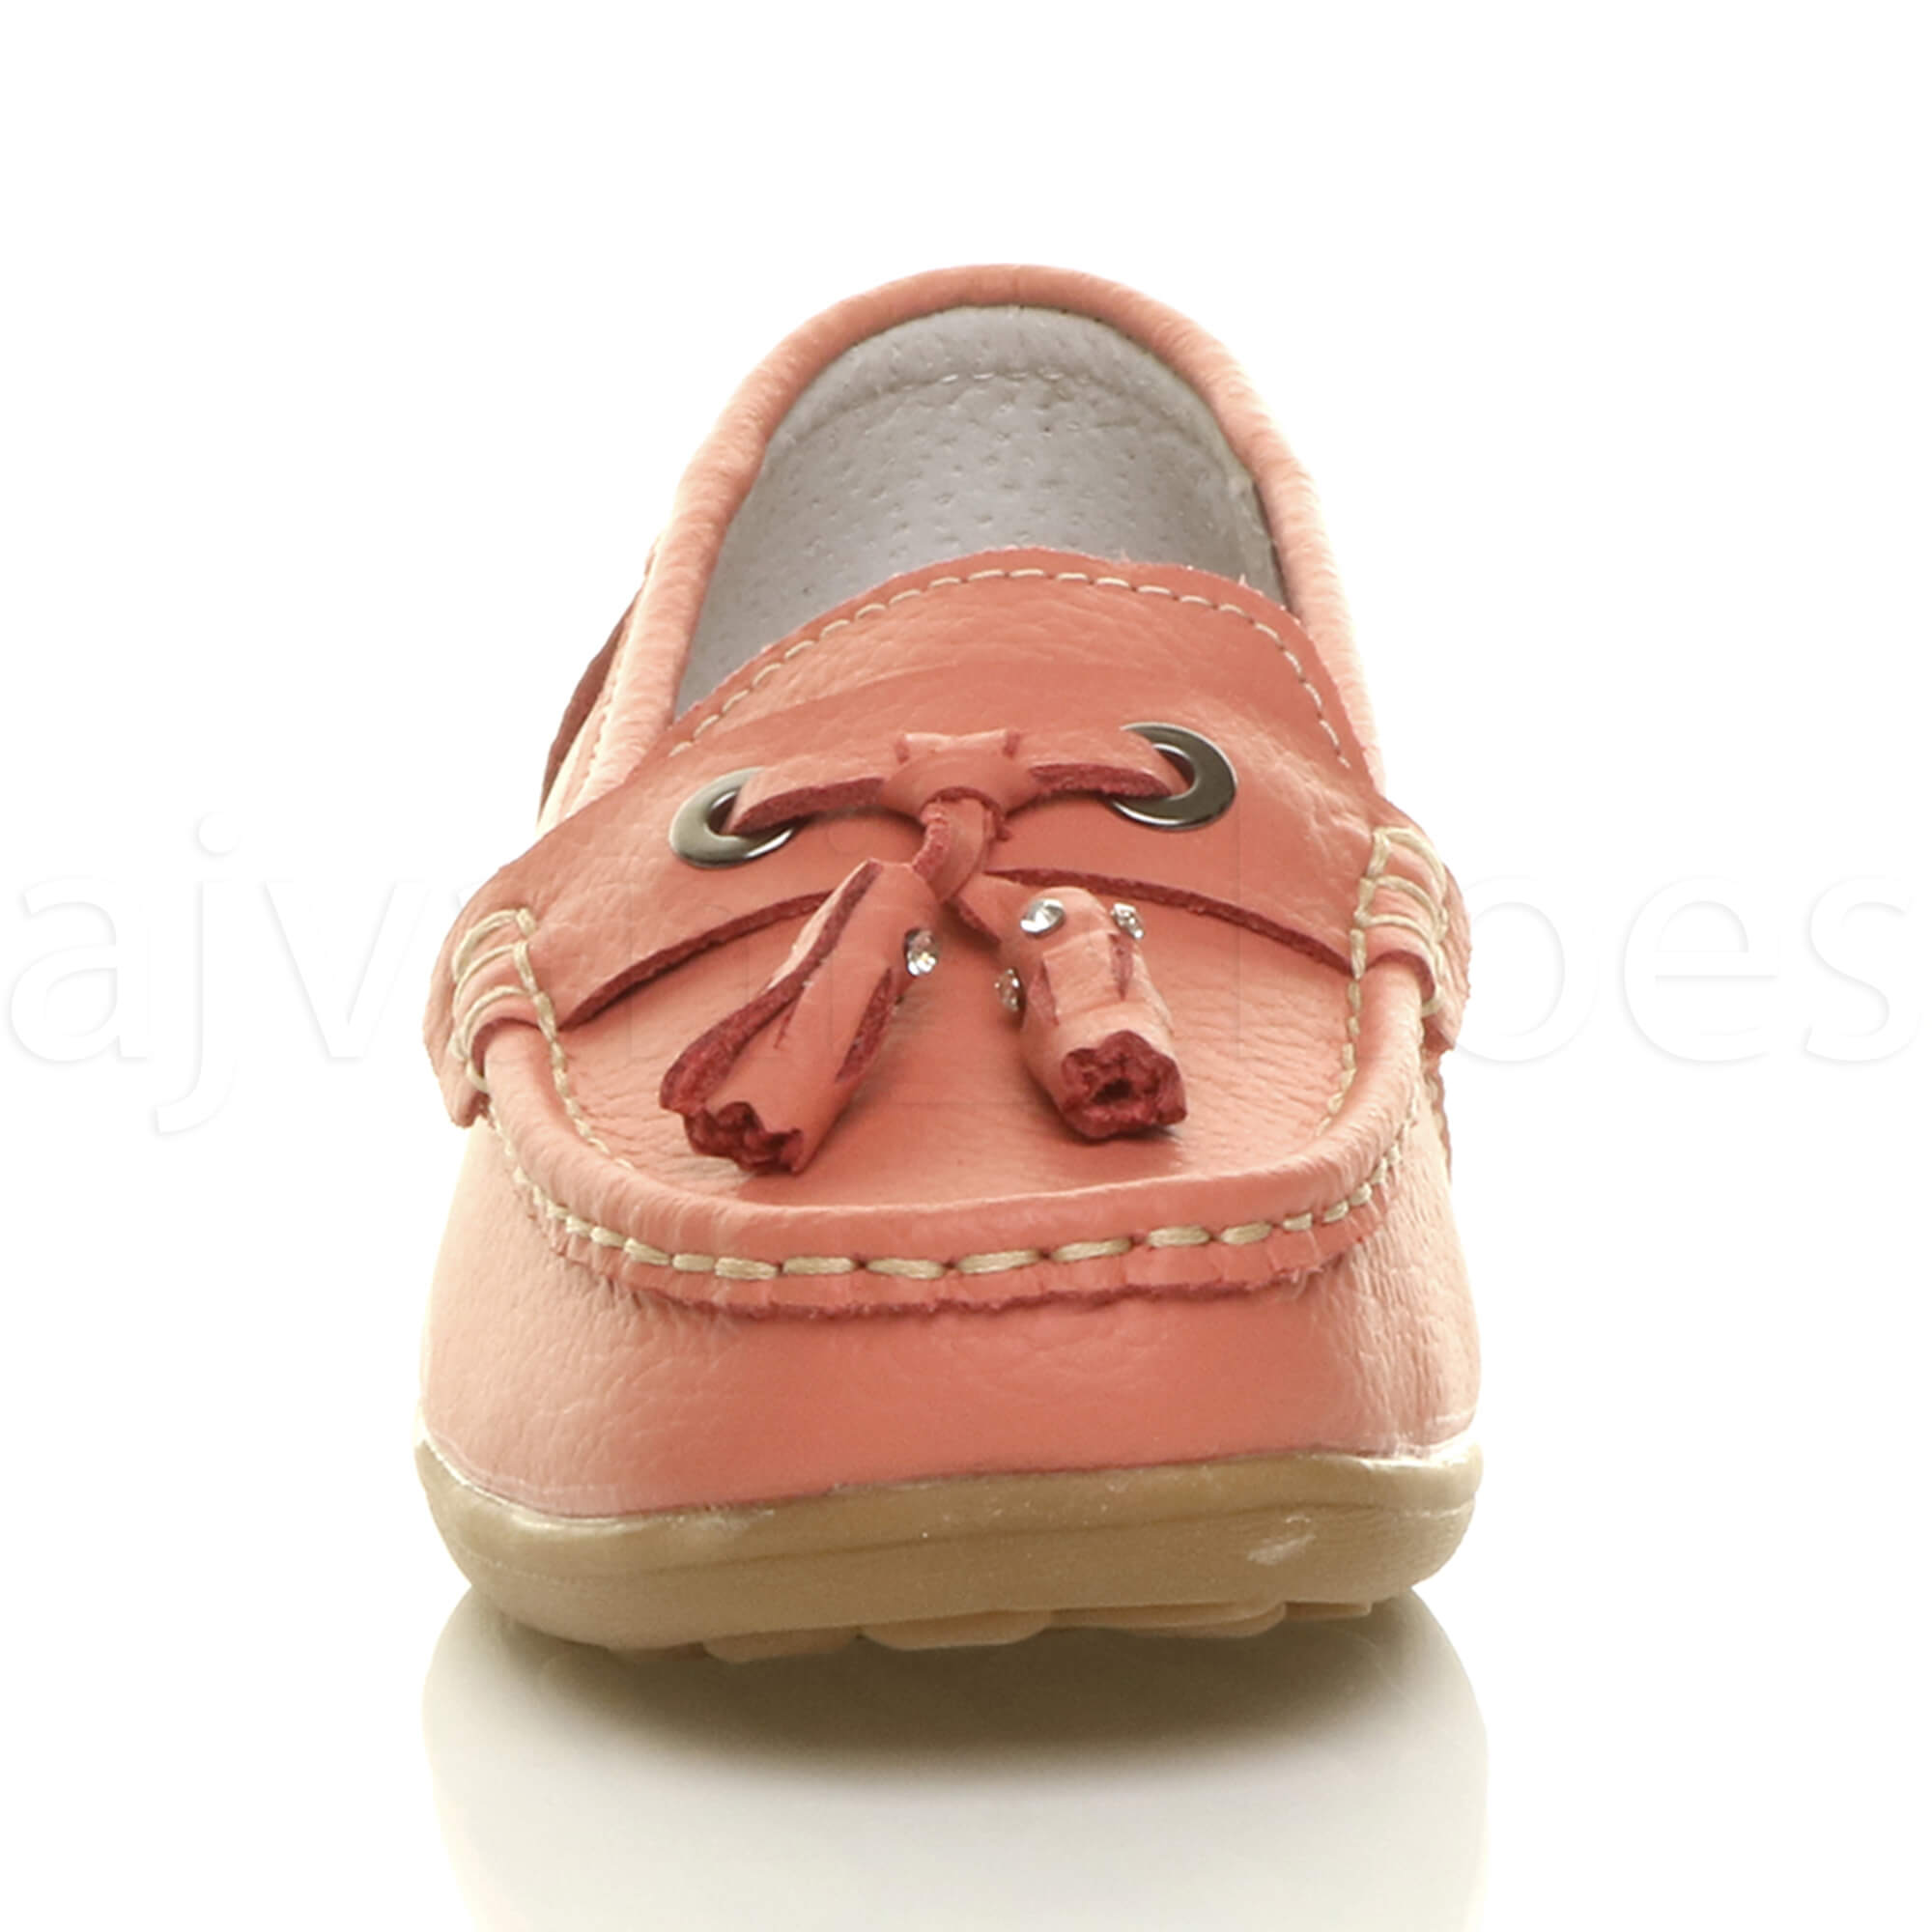 WOMENS-LADIES-LOW-HEEL-WEDGE-LEATHER-TASSEL-LOAFERS-COMFORT-MOCCASINS-SHOES-SIZE thumbnail 31